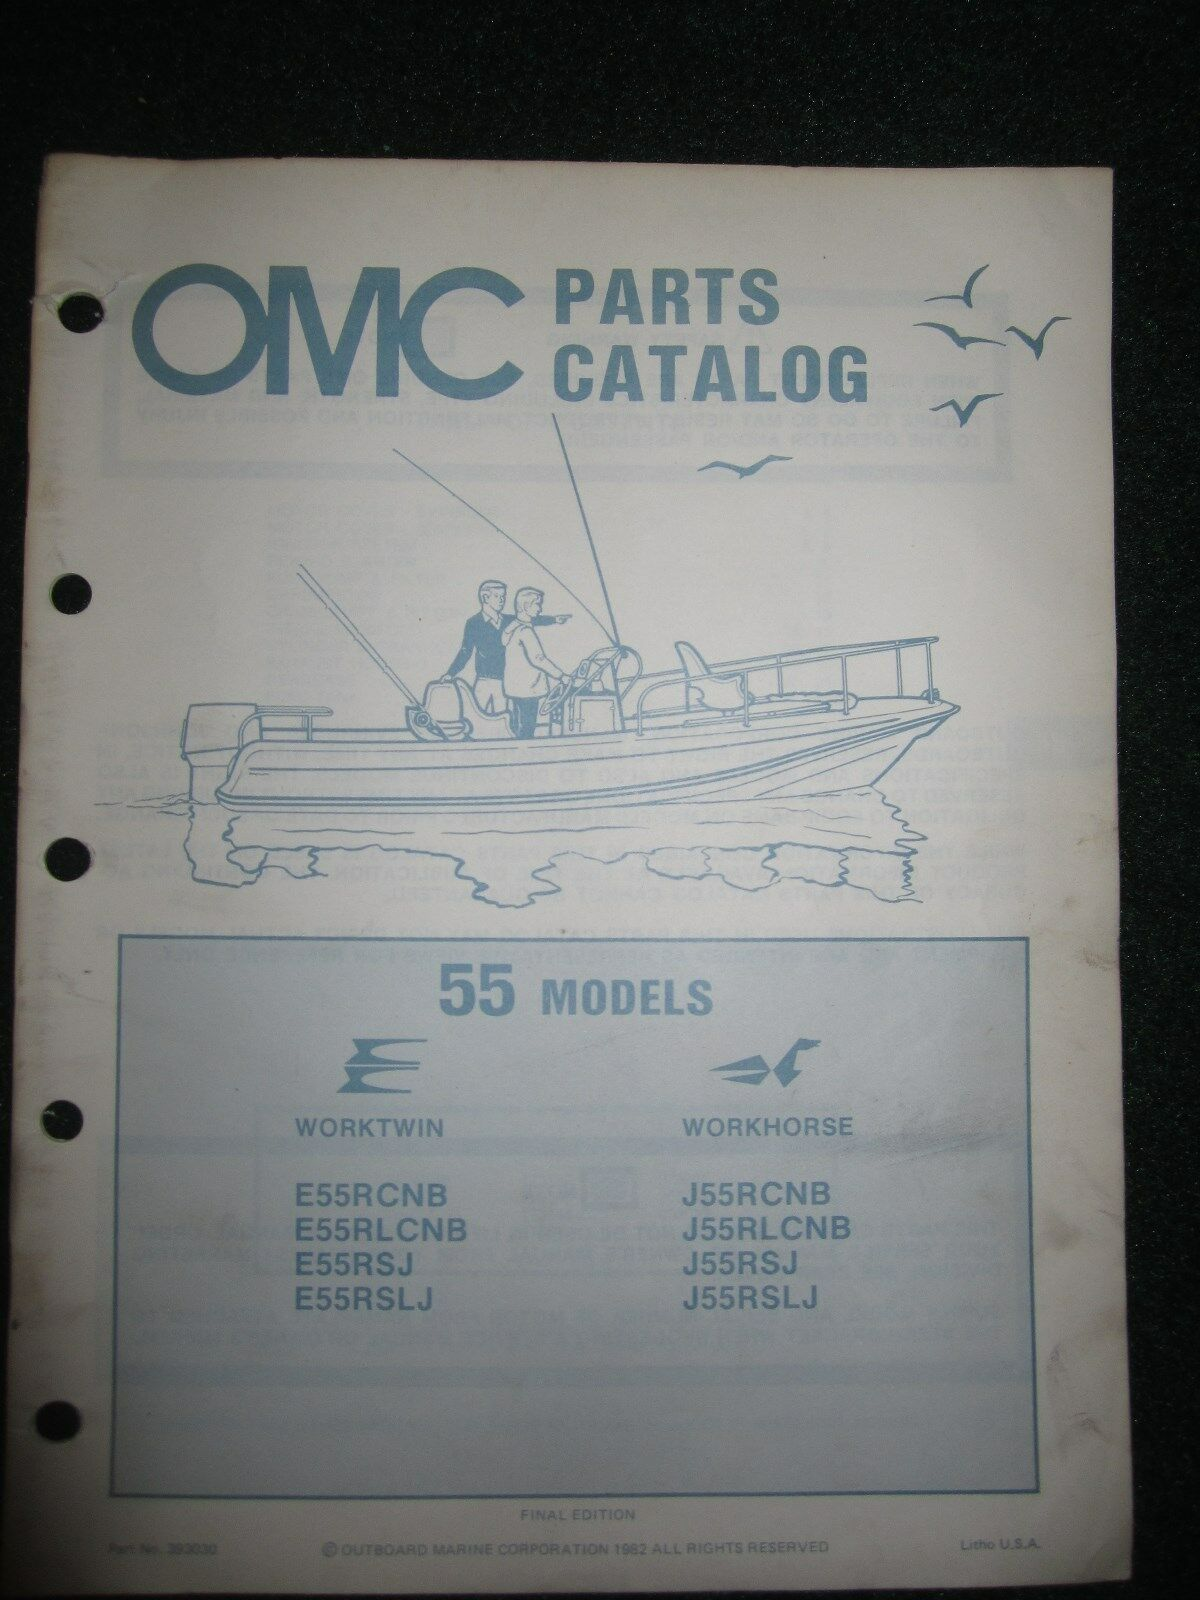 1982 OMC Johnson Evinrude Outboard Parts Catalog Manual 55 HP Worktwin  Workhorse